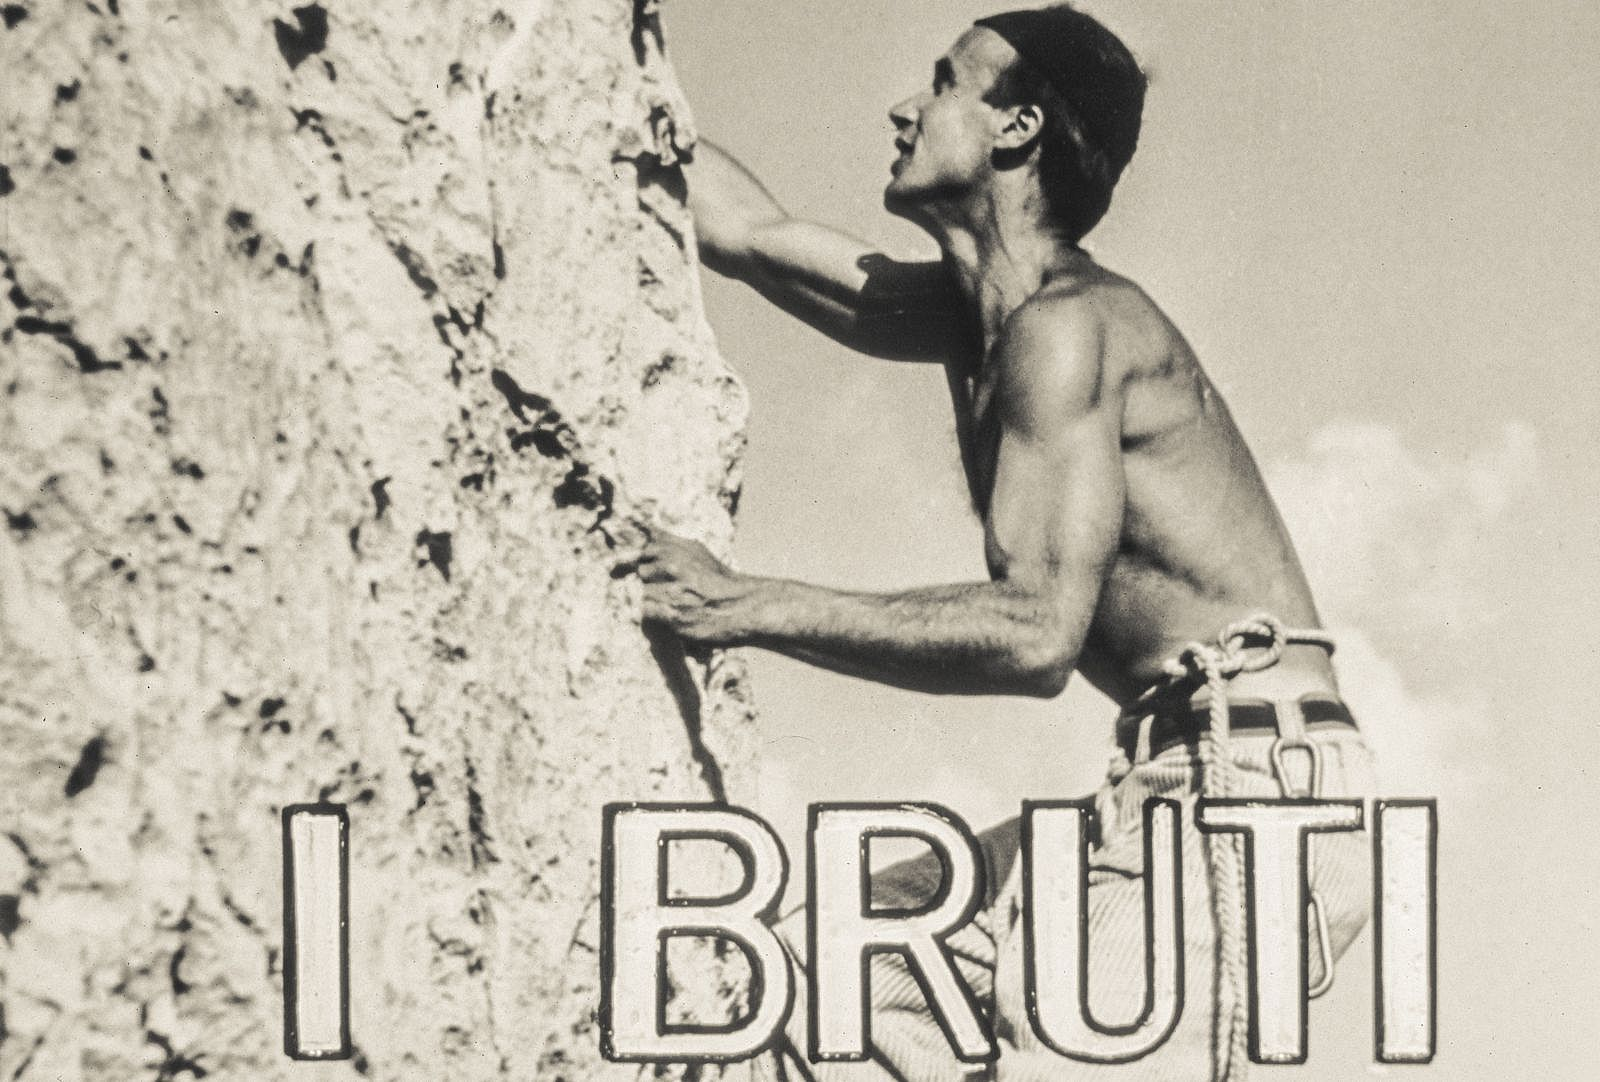 AUTORE: Merlino Multivisioni /